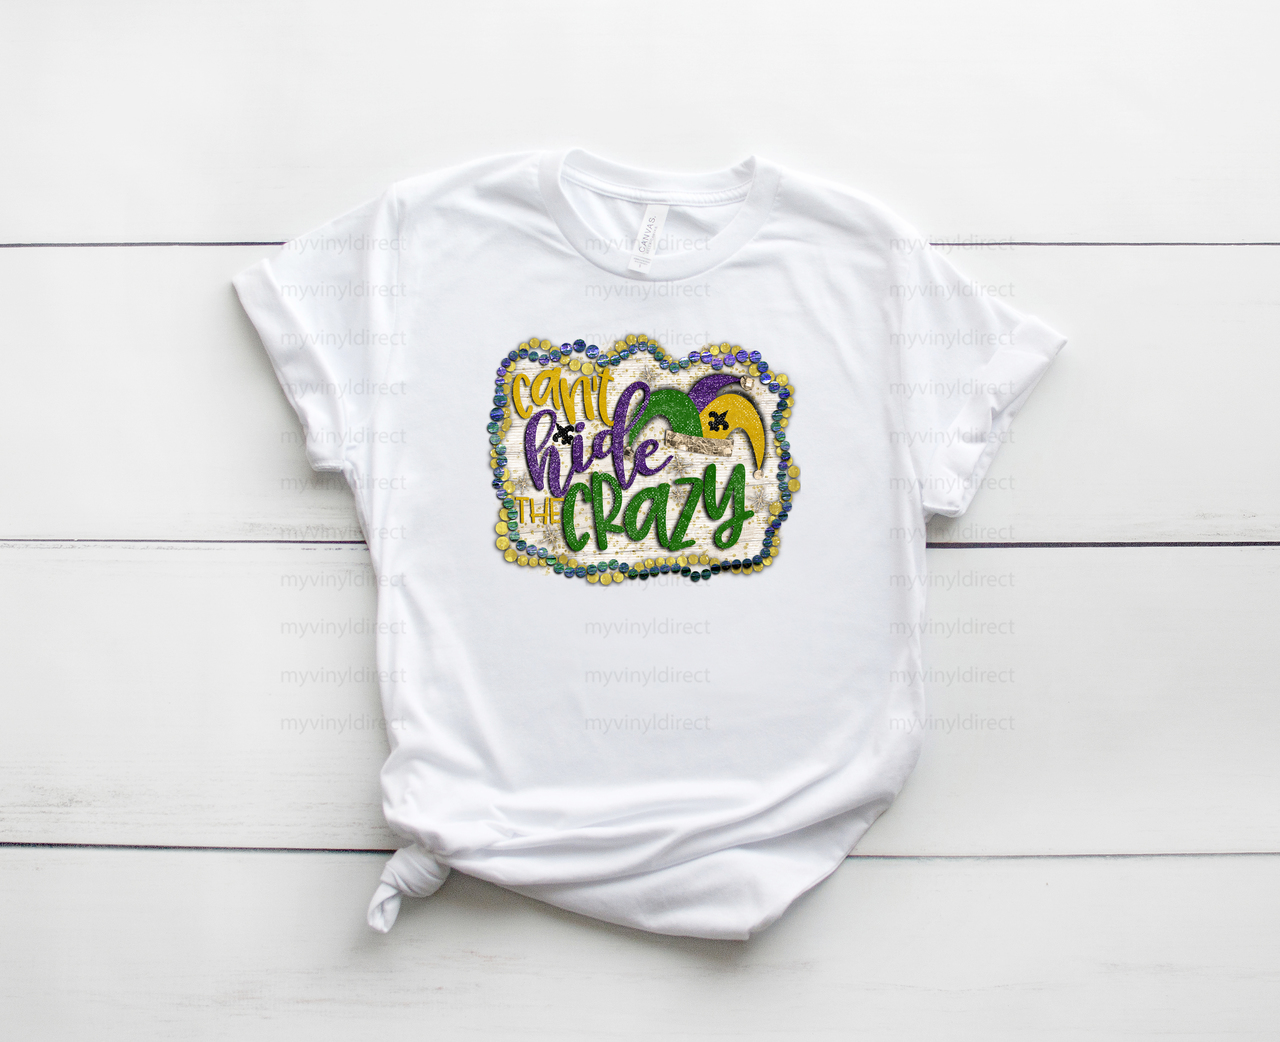 Can't Hide The Crazy | Sublimation Transfer